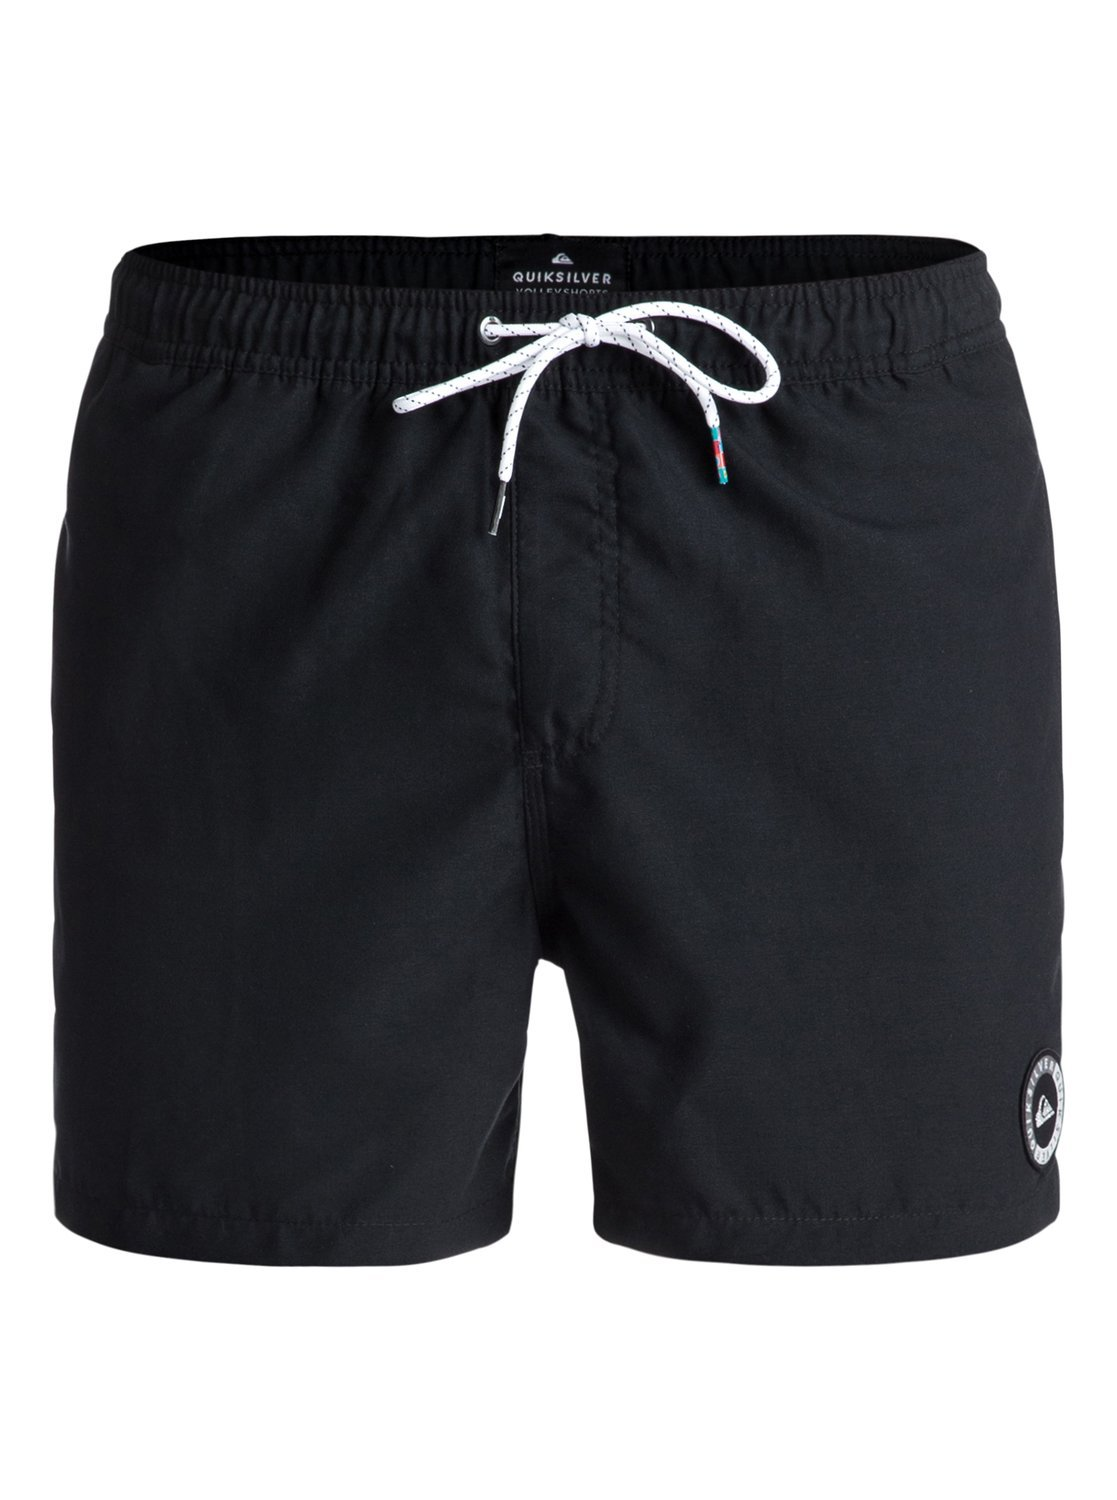 TALLA L. Quiksilver Everyday Volley 15